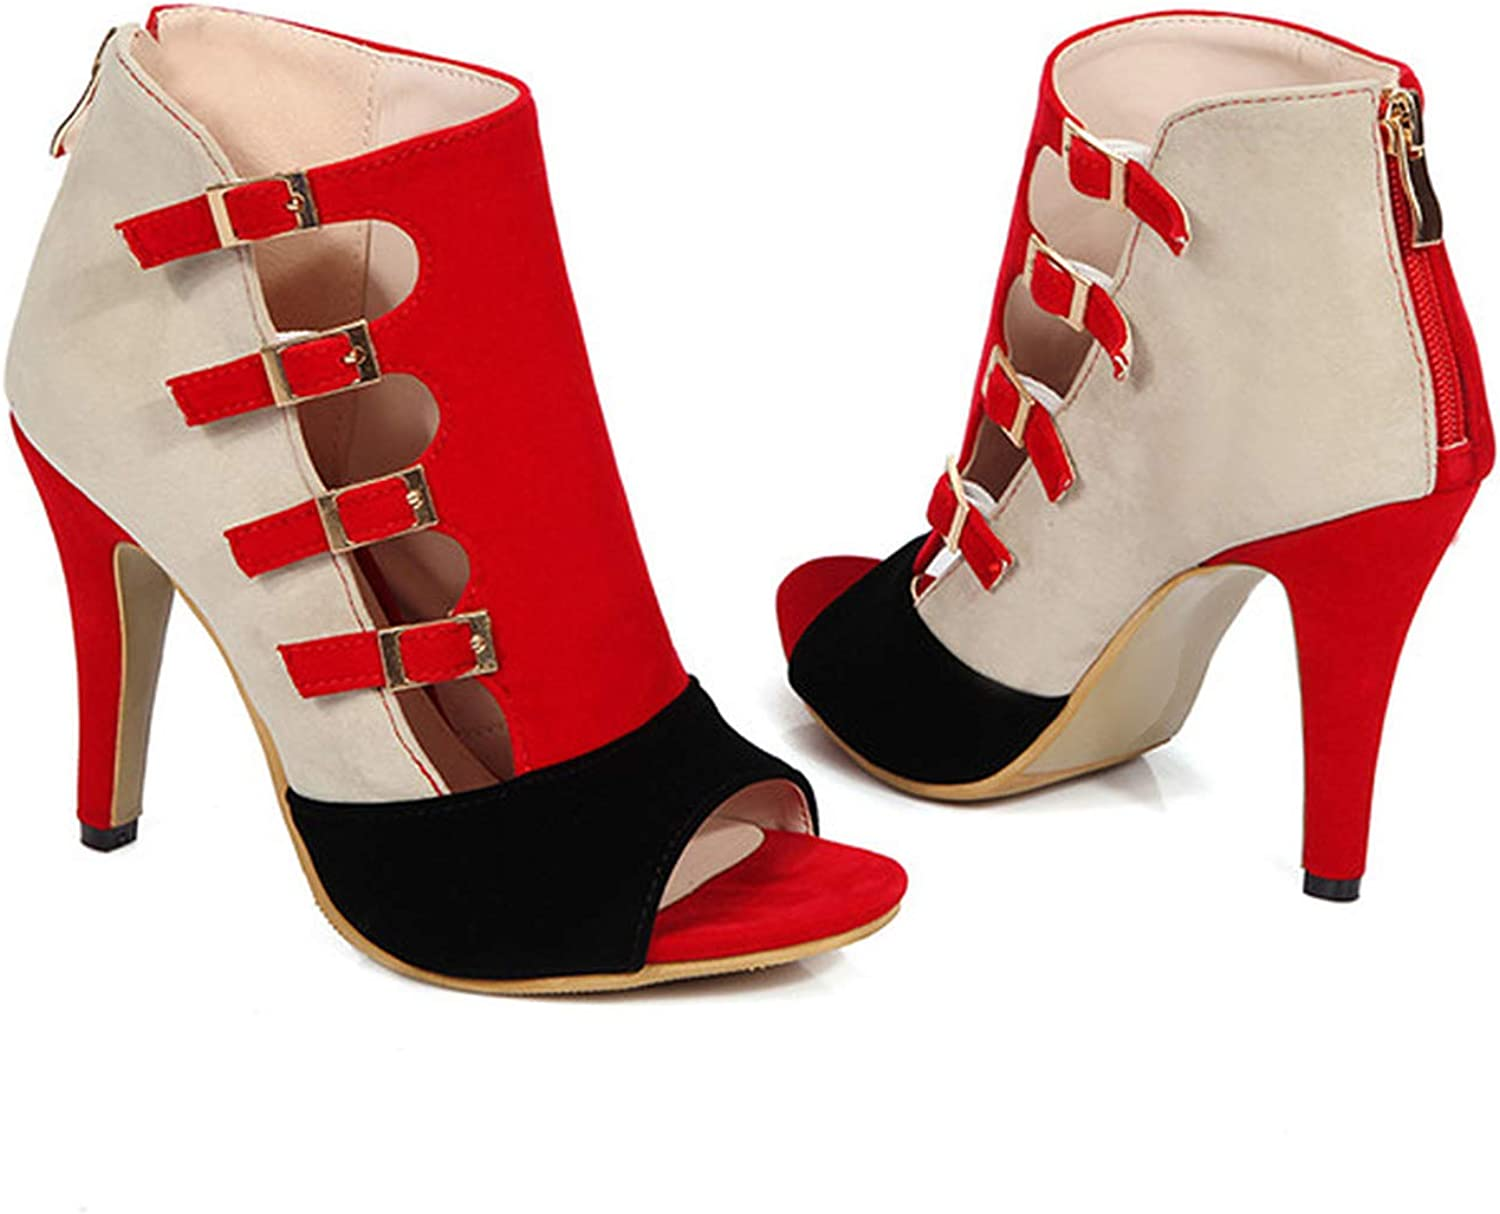 Women shoes High Heels Gladiator shoes Plus Size 34-46 Red Buckle High Heel shoes